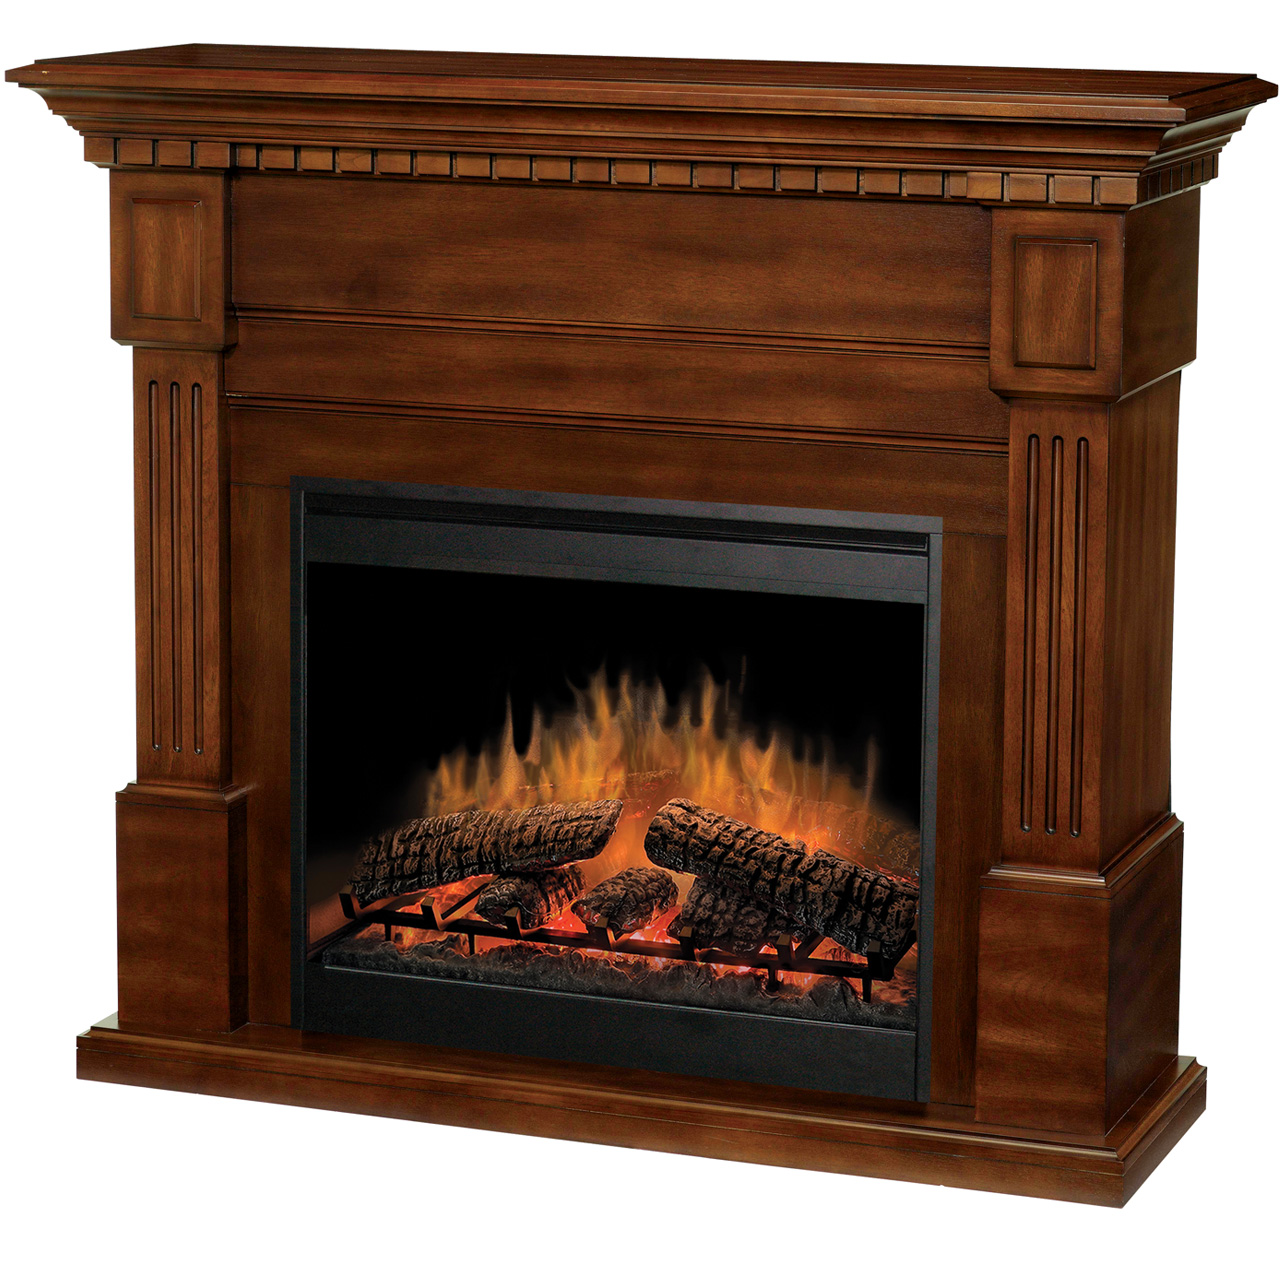 Decorating: Charming Dimplex Electric Fireplaces With Brown Wood Mantel Kit For Heatwarming Ideas